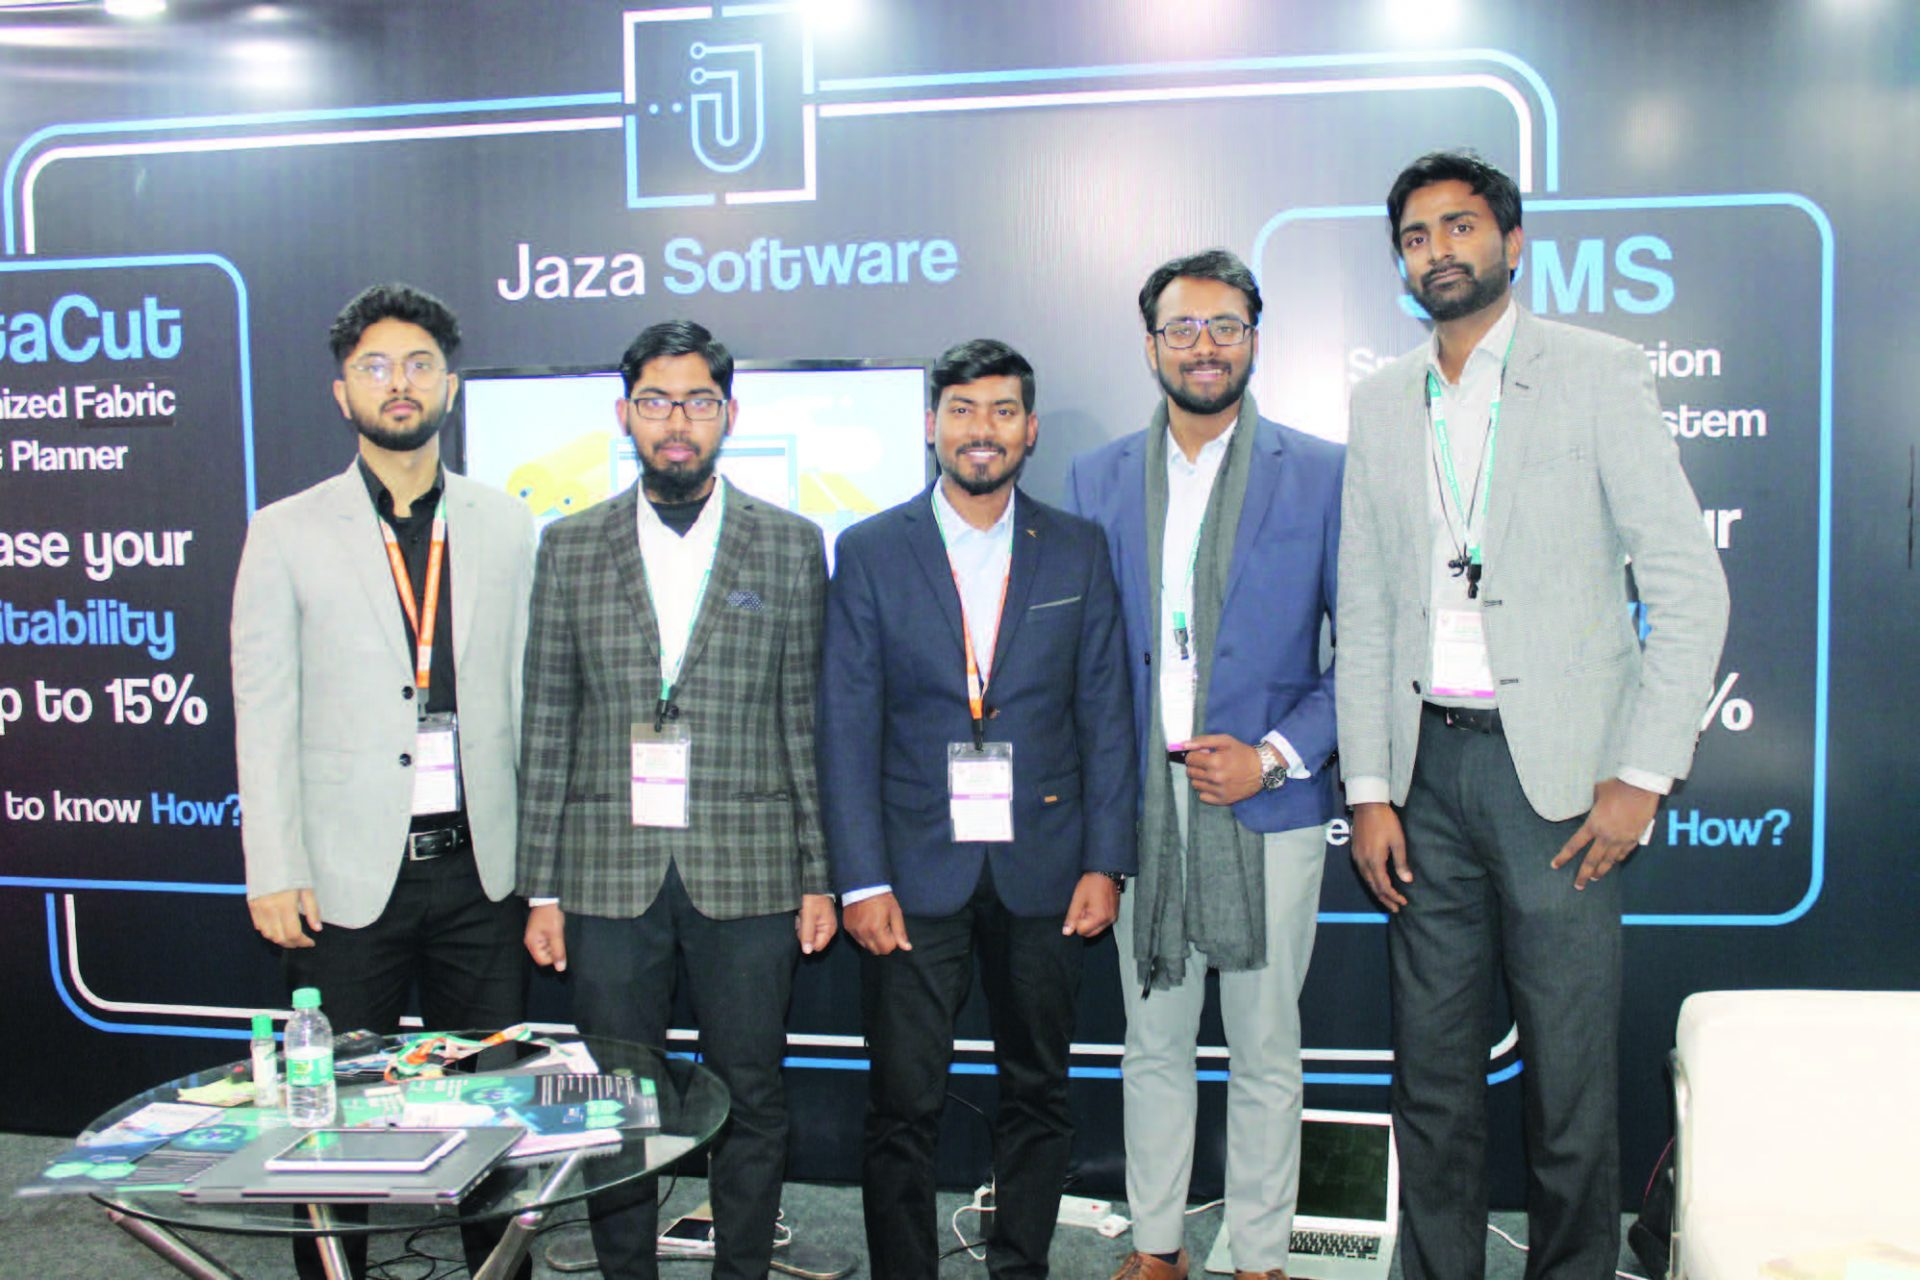 SPMS: Smart Production Management System by Jaza Sof twa re